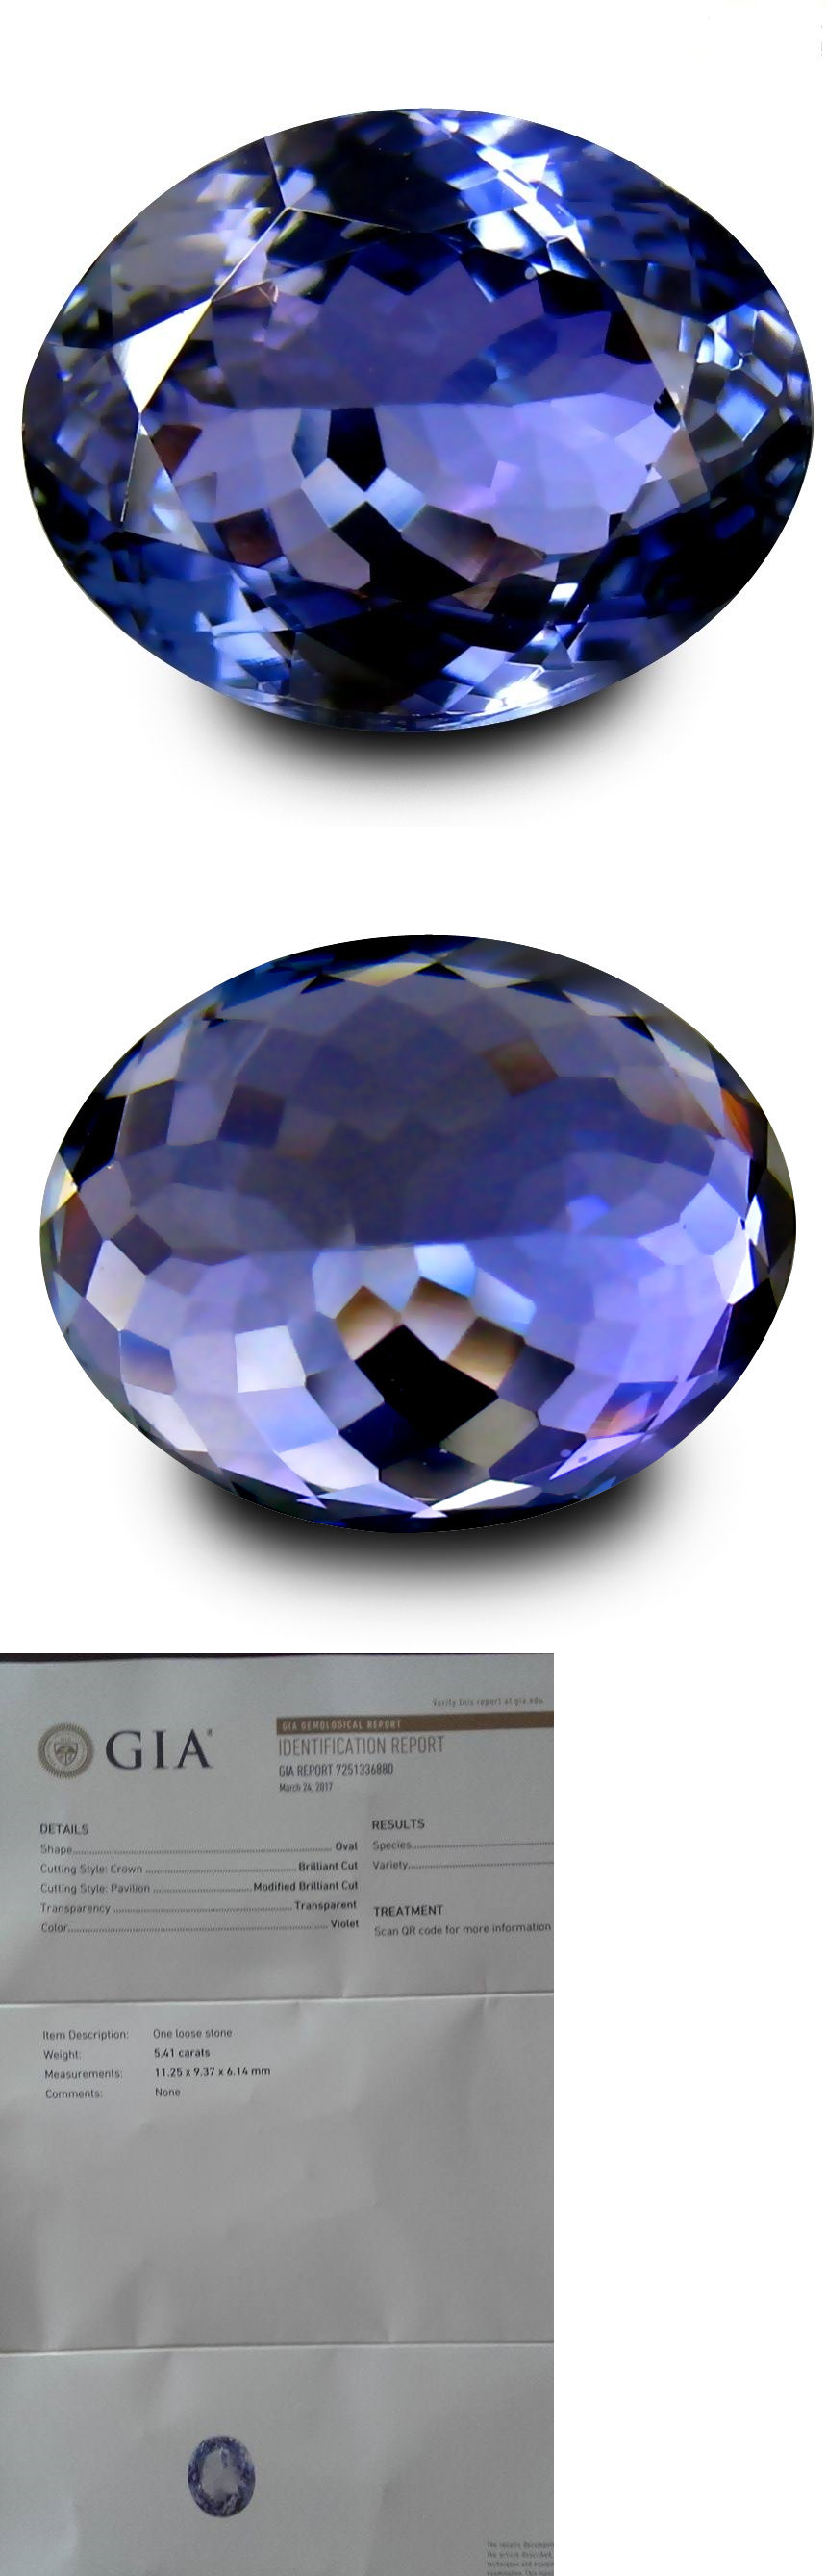 jumbo gia gemstone ring certified natural tanzanite unheated jewellery catalog singapore island